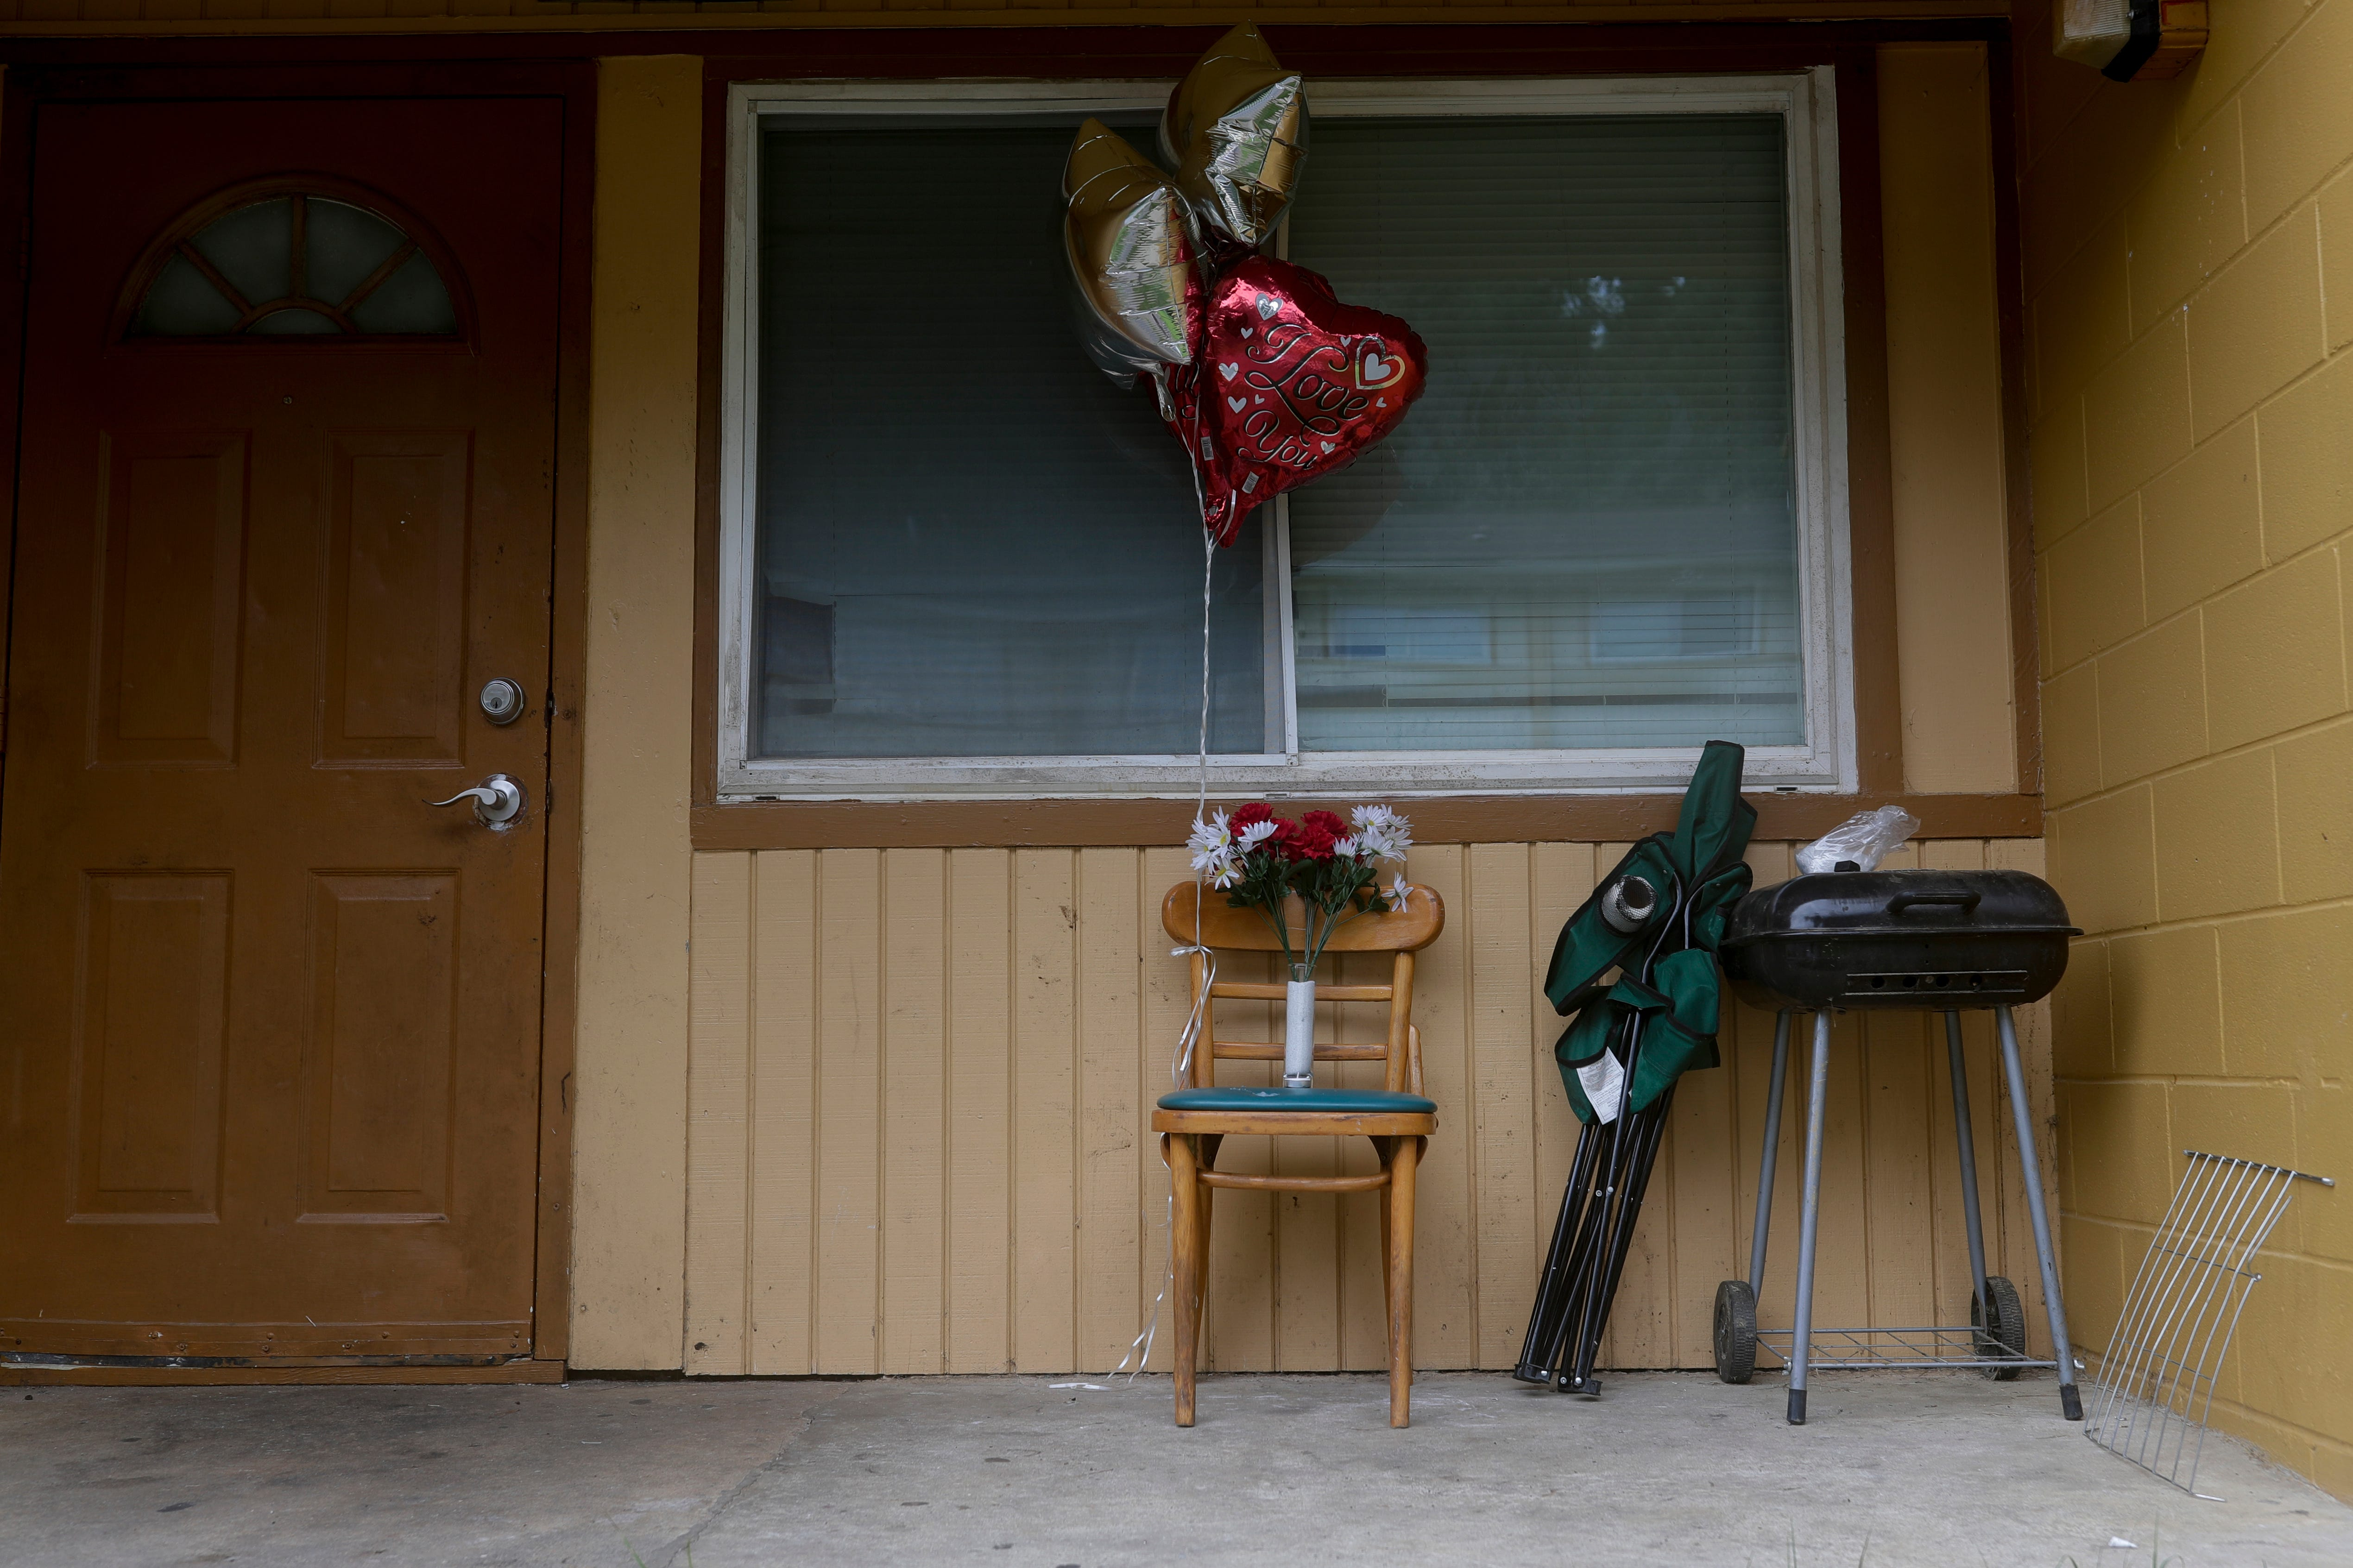 Balloons, a single candle and a bouquet of plastic flowers are placed on the front porch of a Springfield Apartments building where the victim of a Friday night shooting lived.